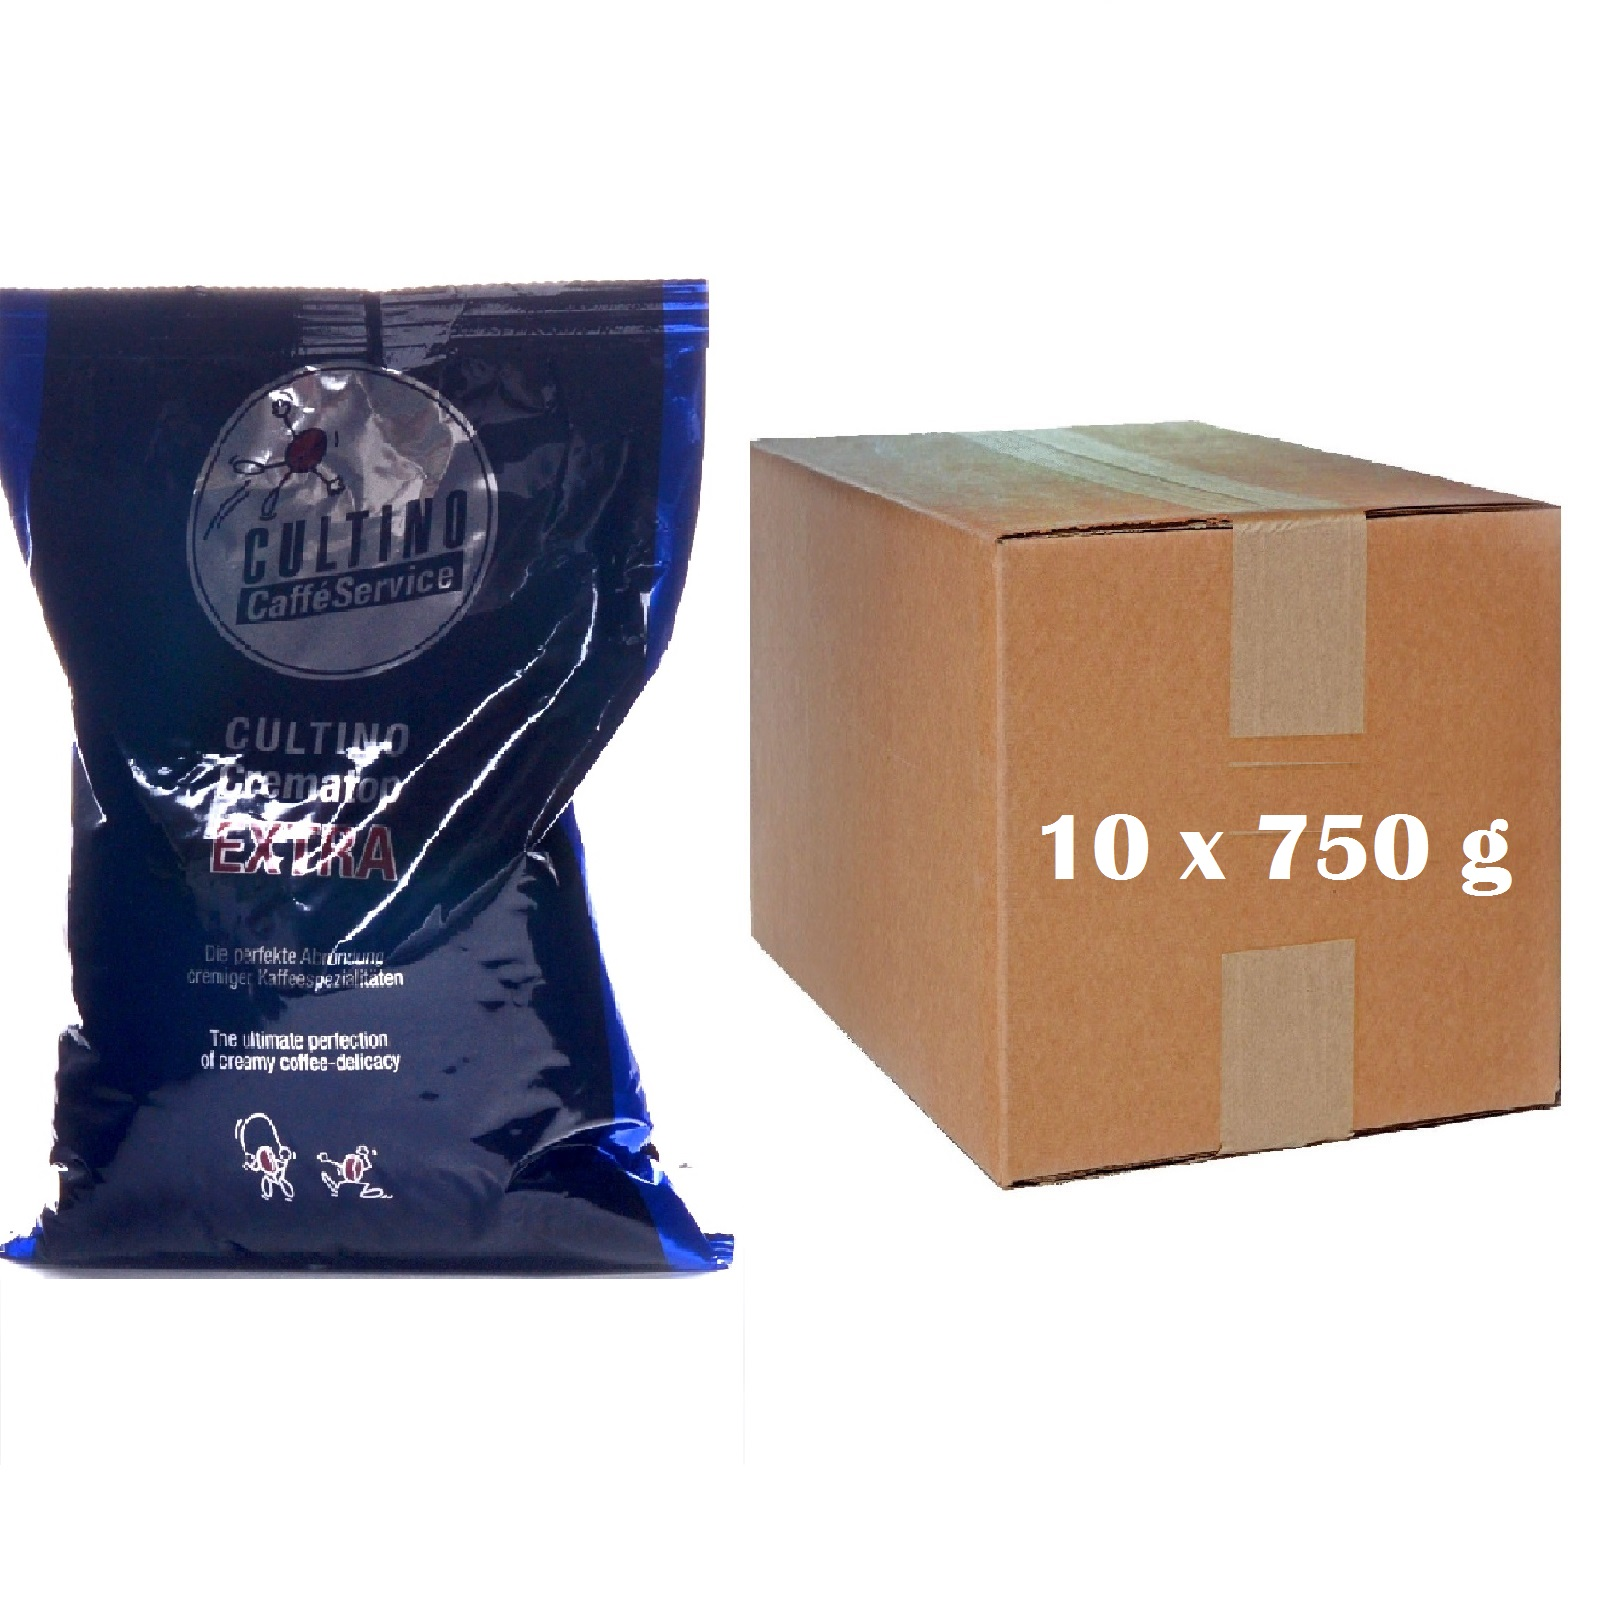 Cultino Crematop Extra Topping 10 x 750g Milchpulver